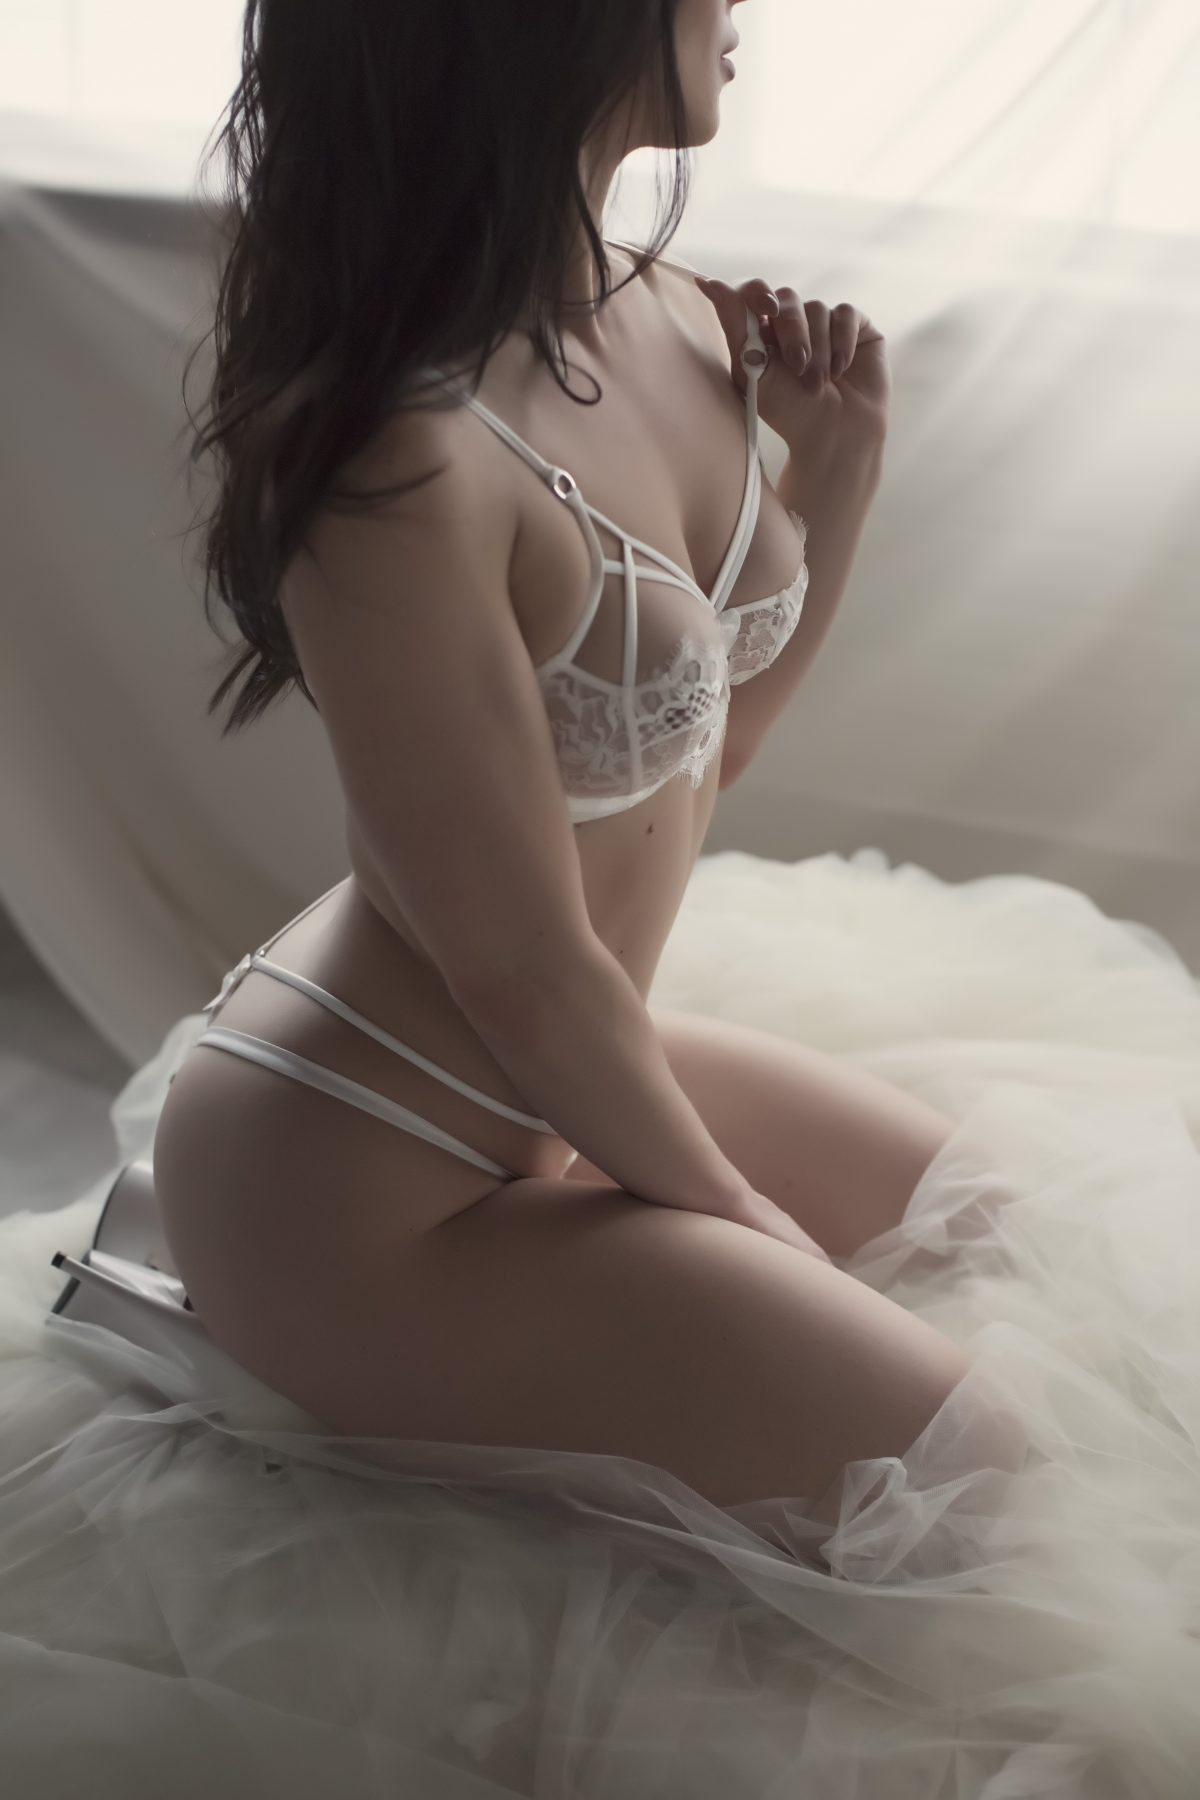 Toronto escorts companion upscale Peyton Interests Duo Couple-friendly Non-smoking Age Mature Figure Slender Petite Breasts Natural Hair Brunette Ethnicity European Tattoos Small